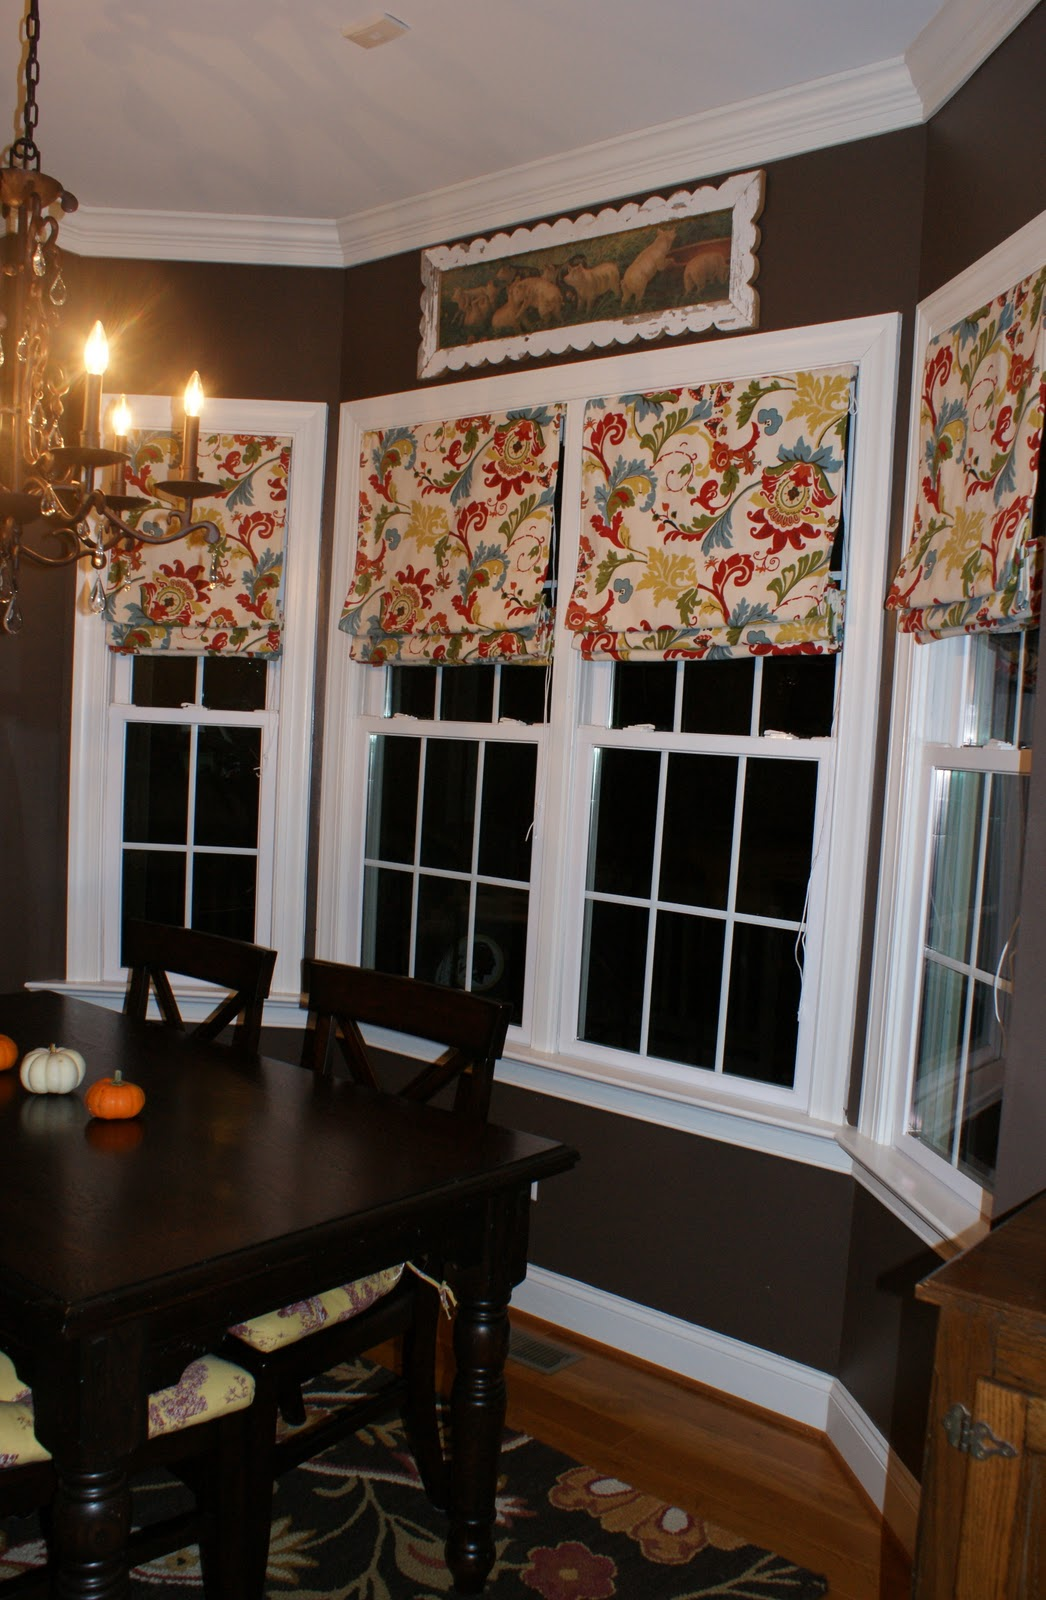 olivia grayson interiors diy roman shades. Black Bedroom Furniture Sets. Home Design Ideas